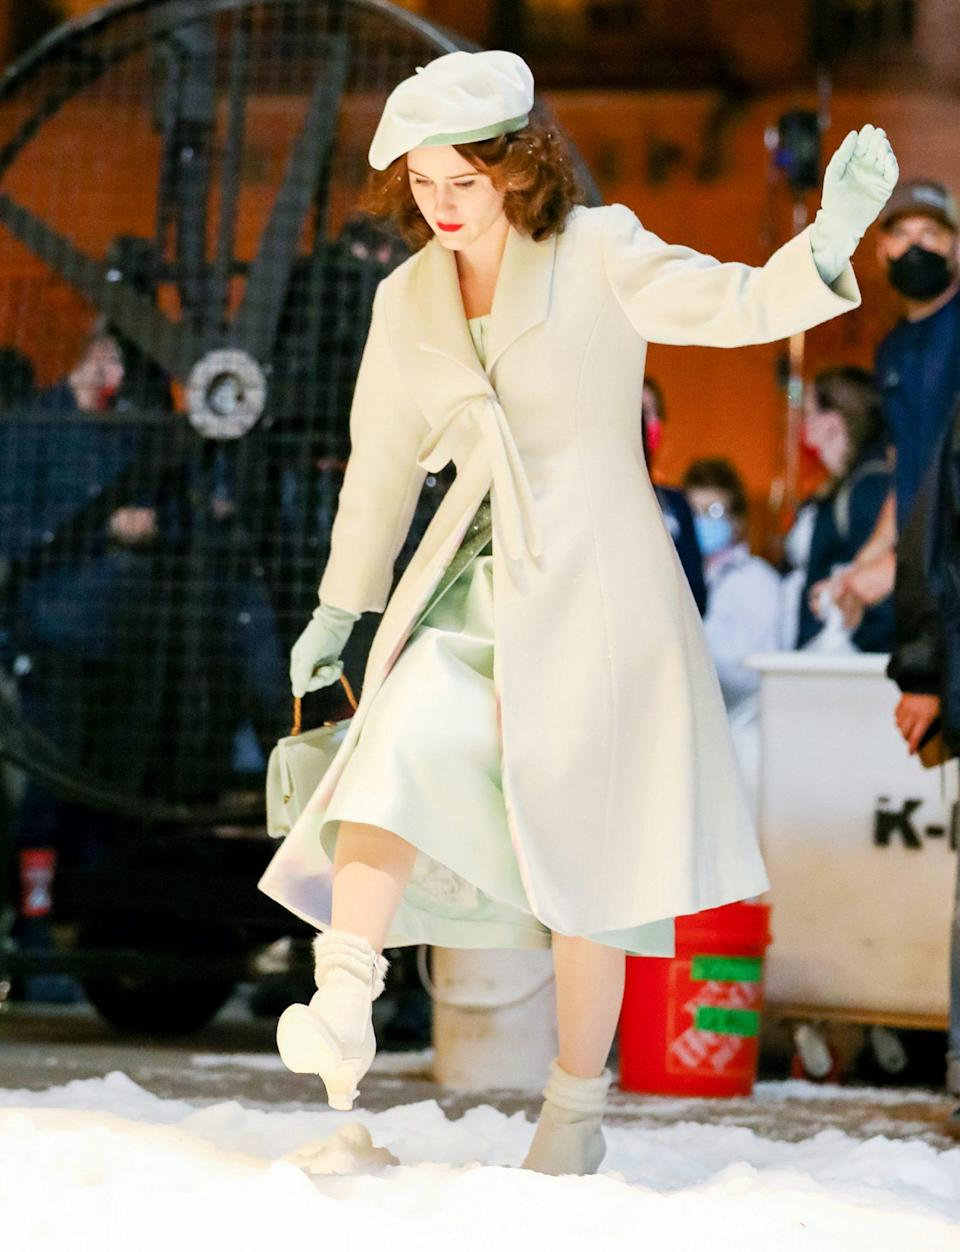 <p>Rachel Brosnahan is dressed for winter while filming an episode of <i>The Marvelous Mrs. Maisel </i>on June 24 in N.Y.C. </p>